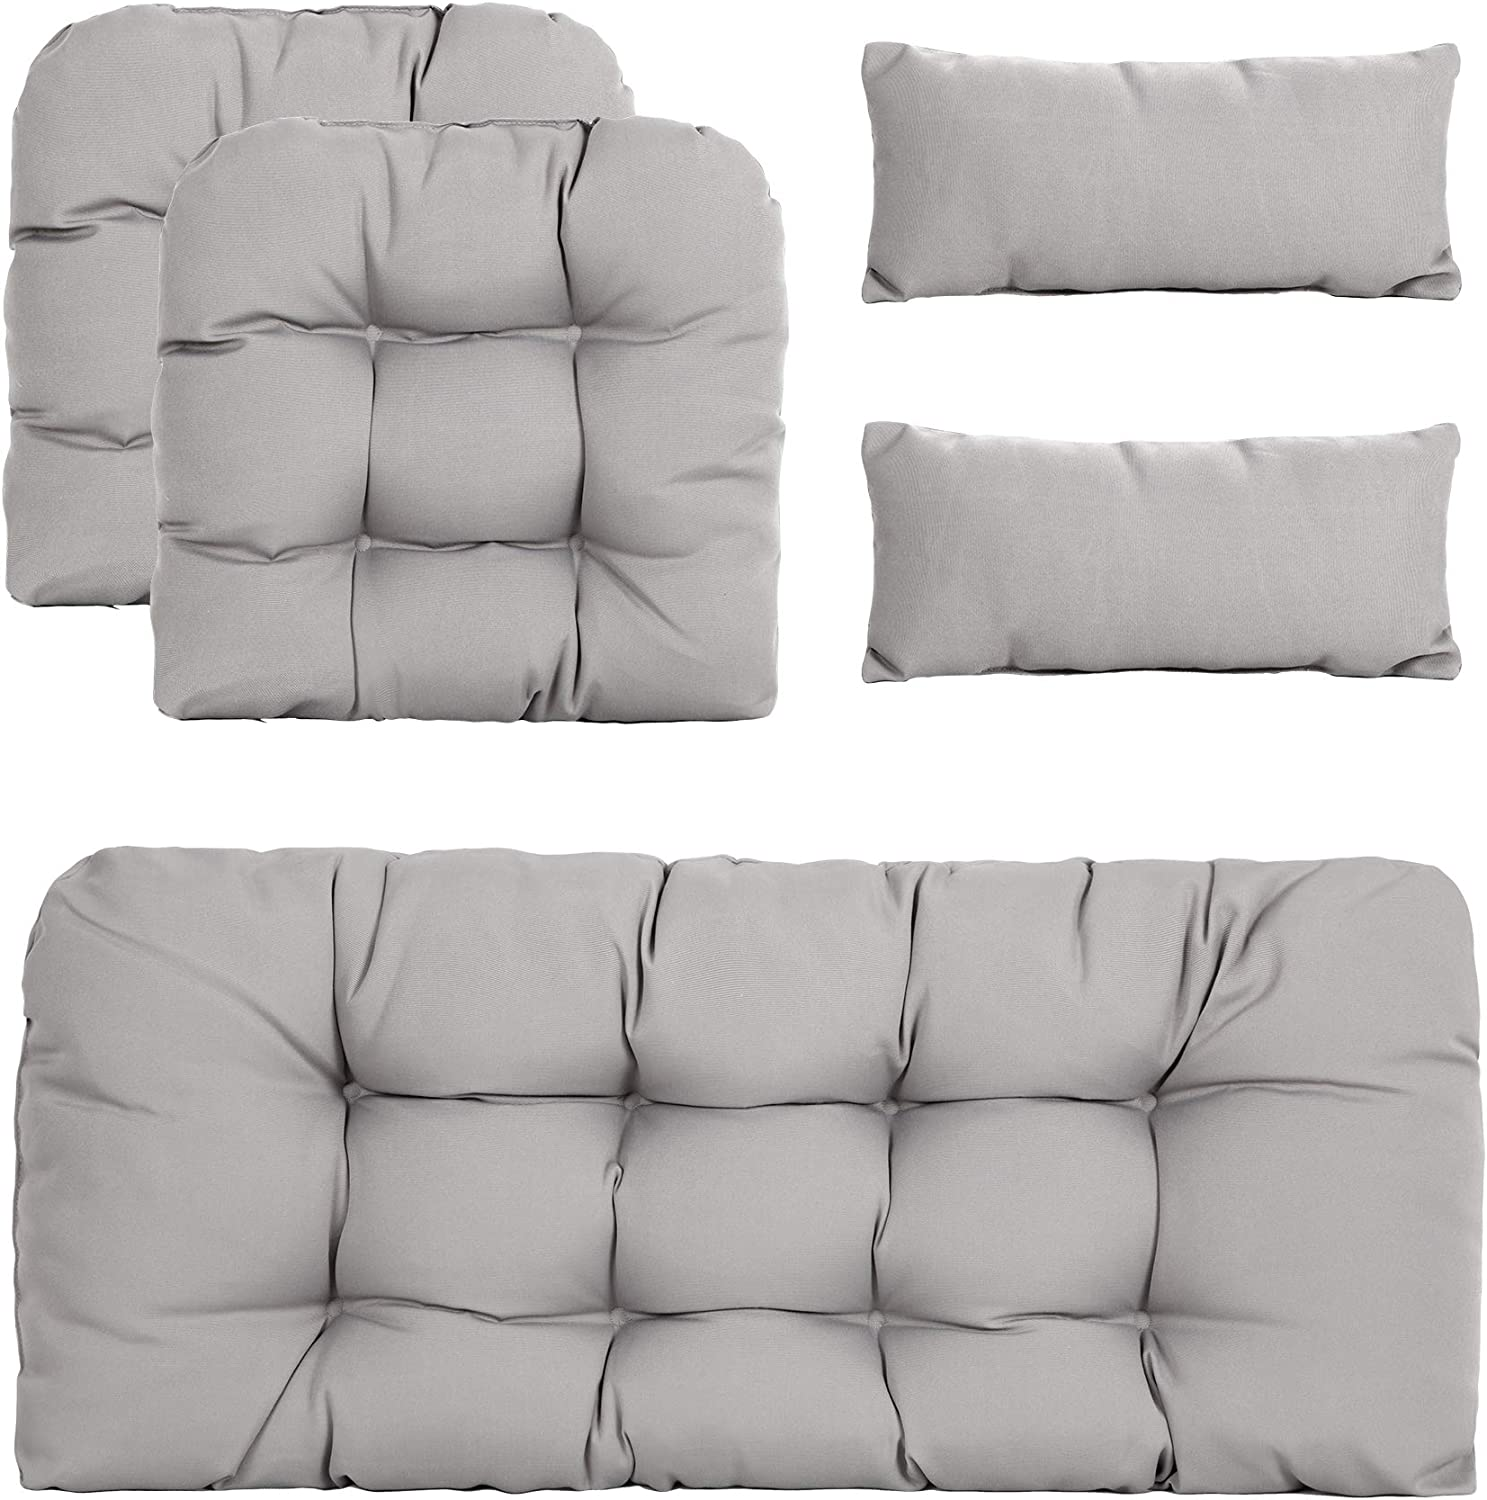 ARTPLAN Outdoor Cushions Loveseat Bench Cushions Set of 5 Wicker Tufted Pillow for Patio Furniture All Weather